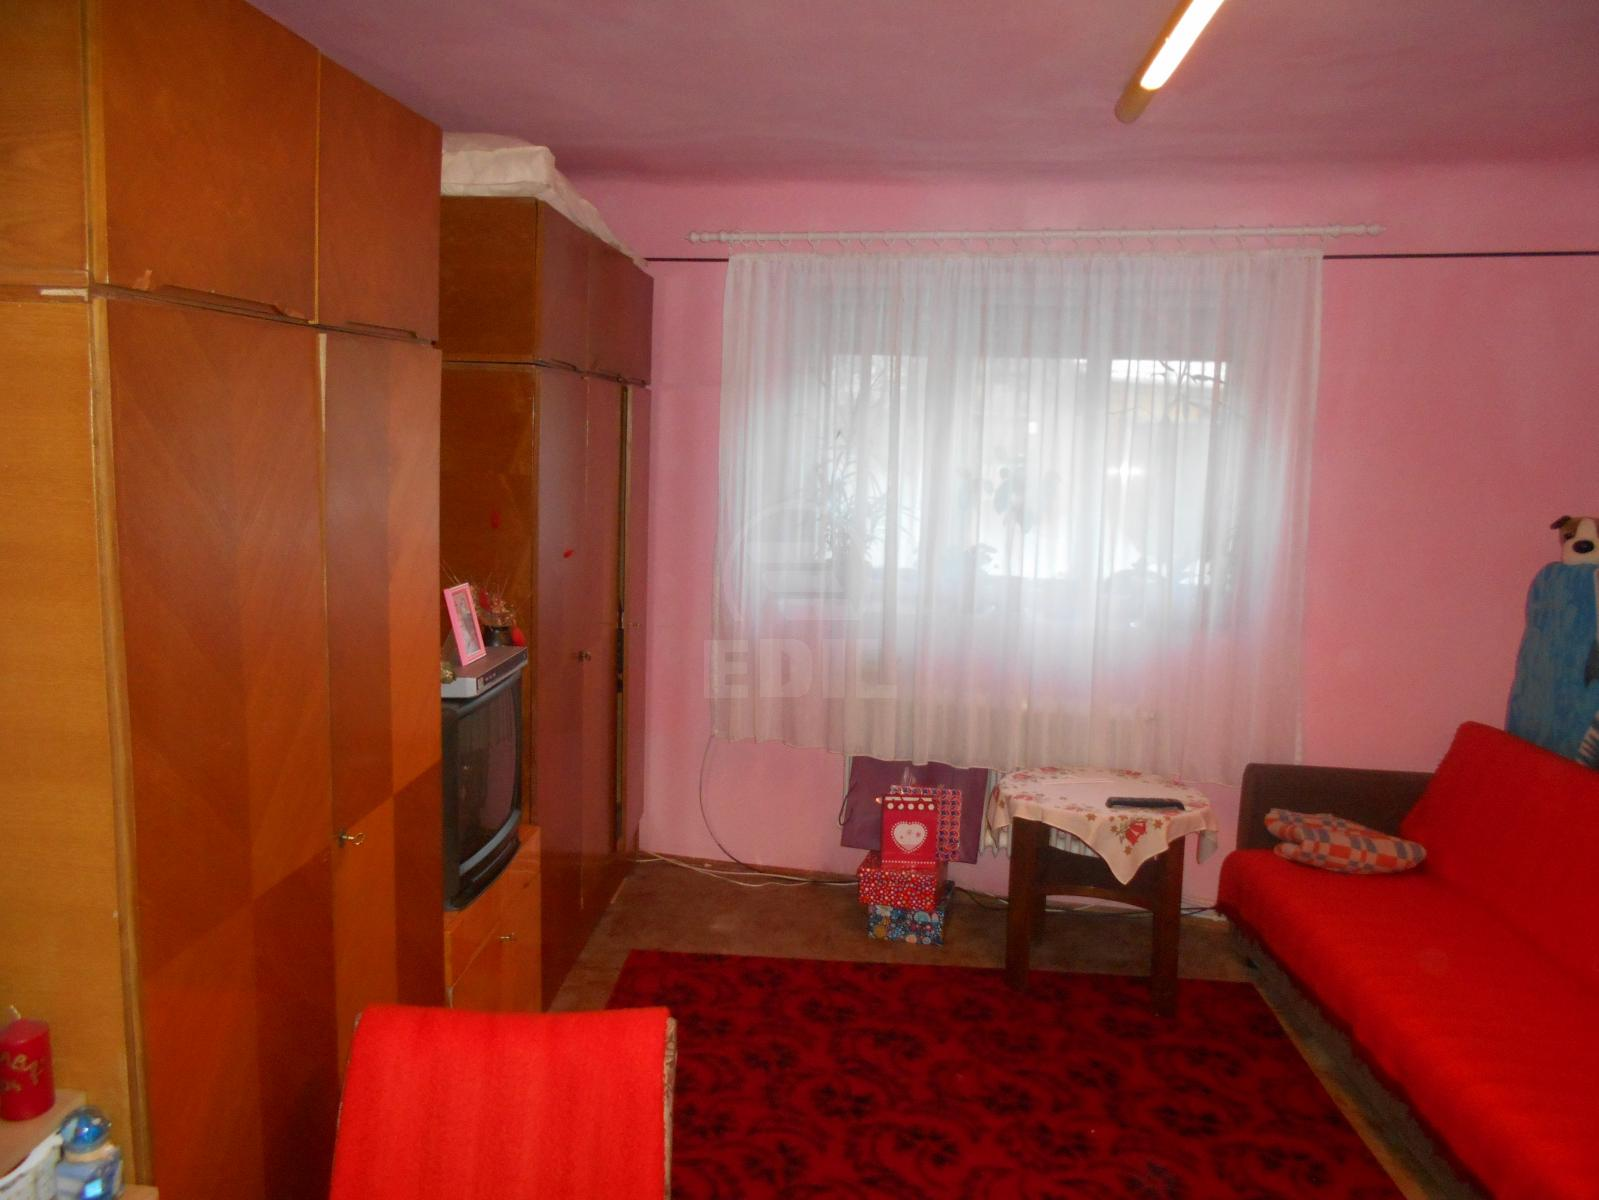 House for sale 3 rooms, CACJ271846-7